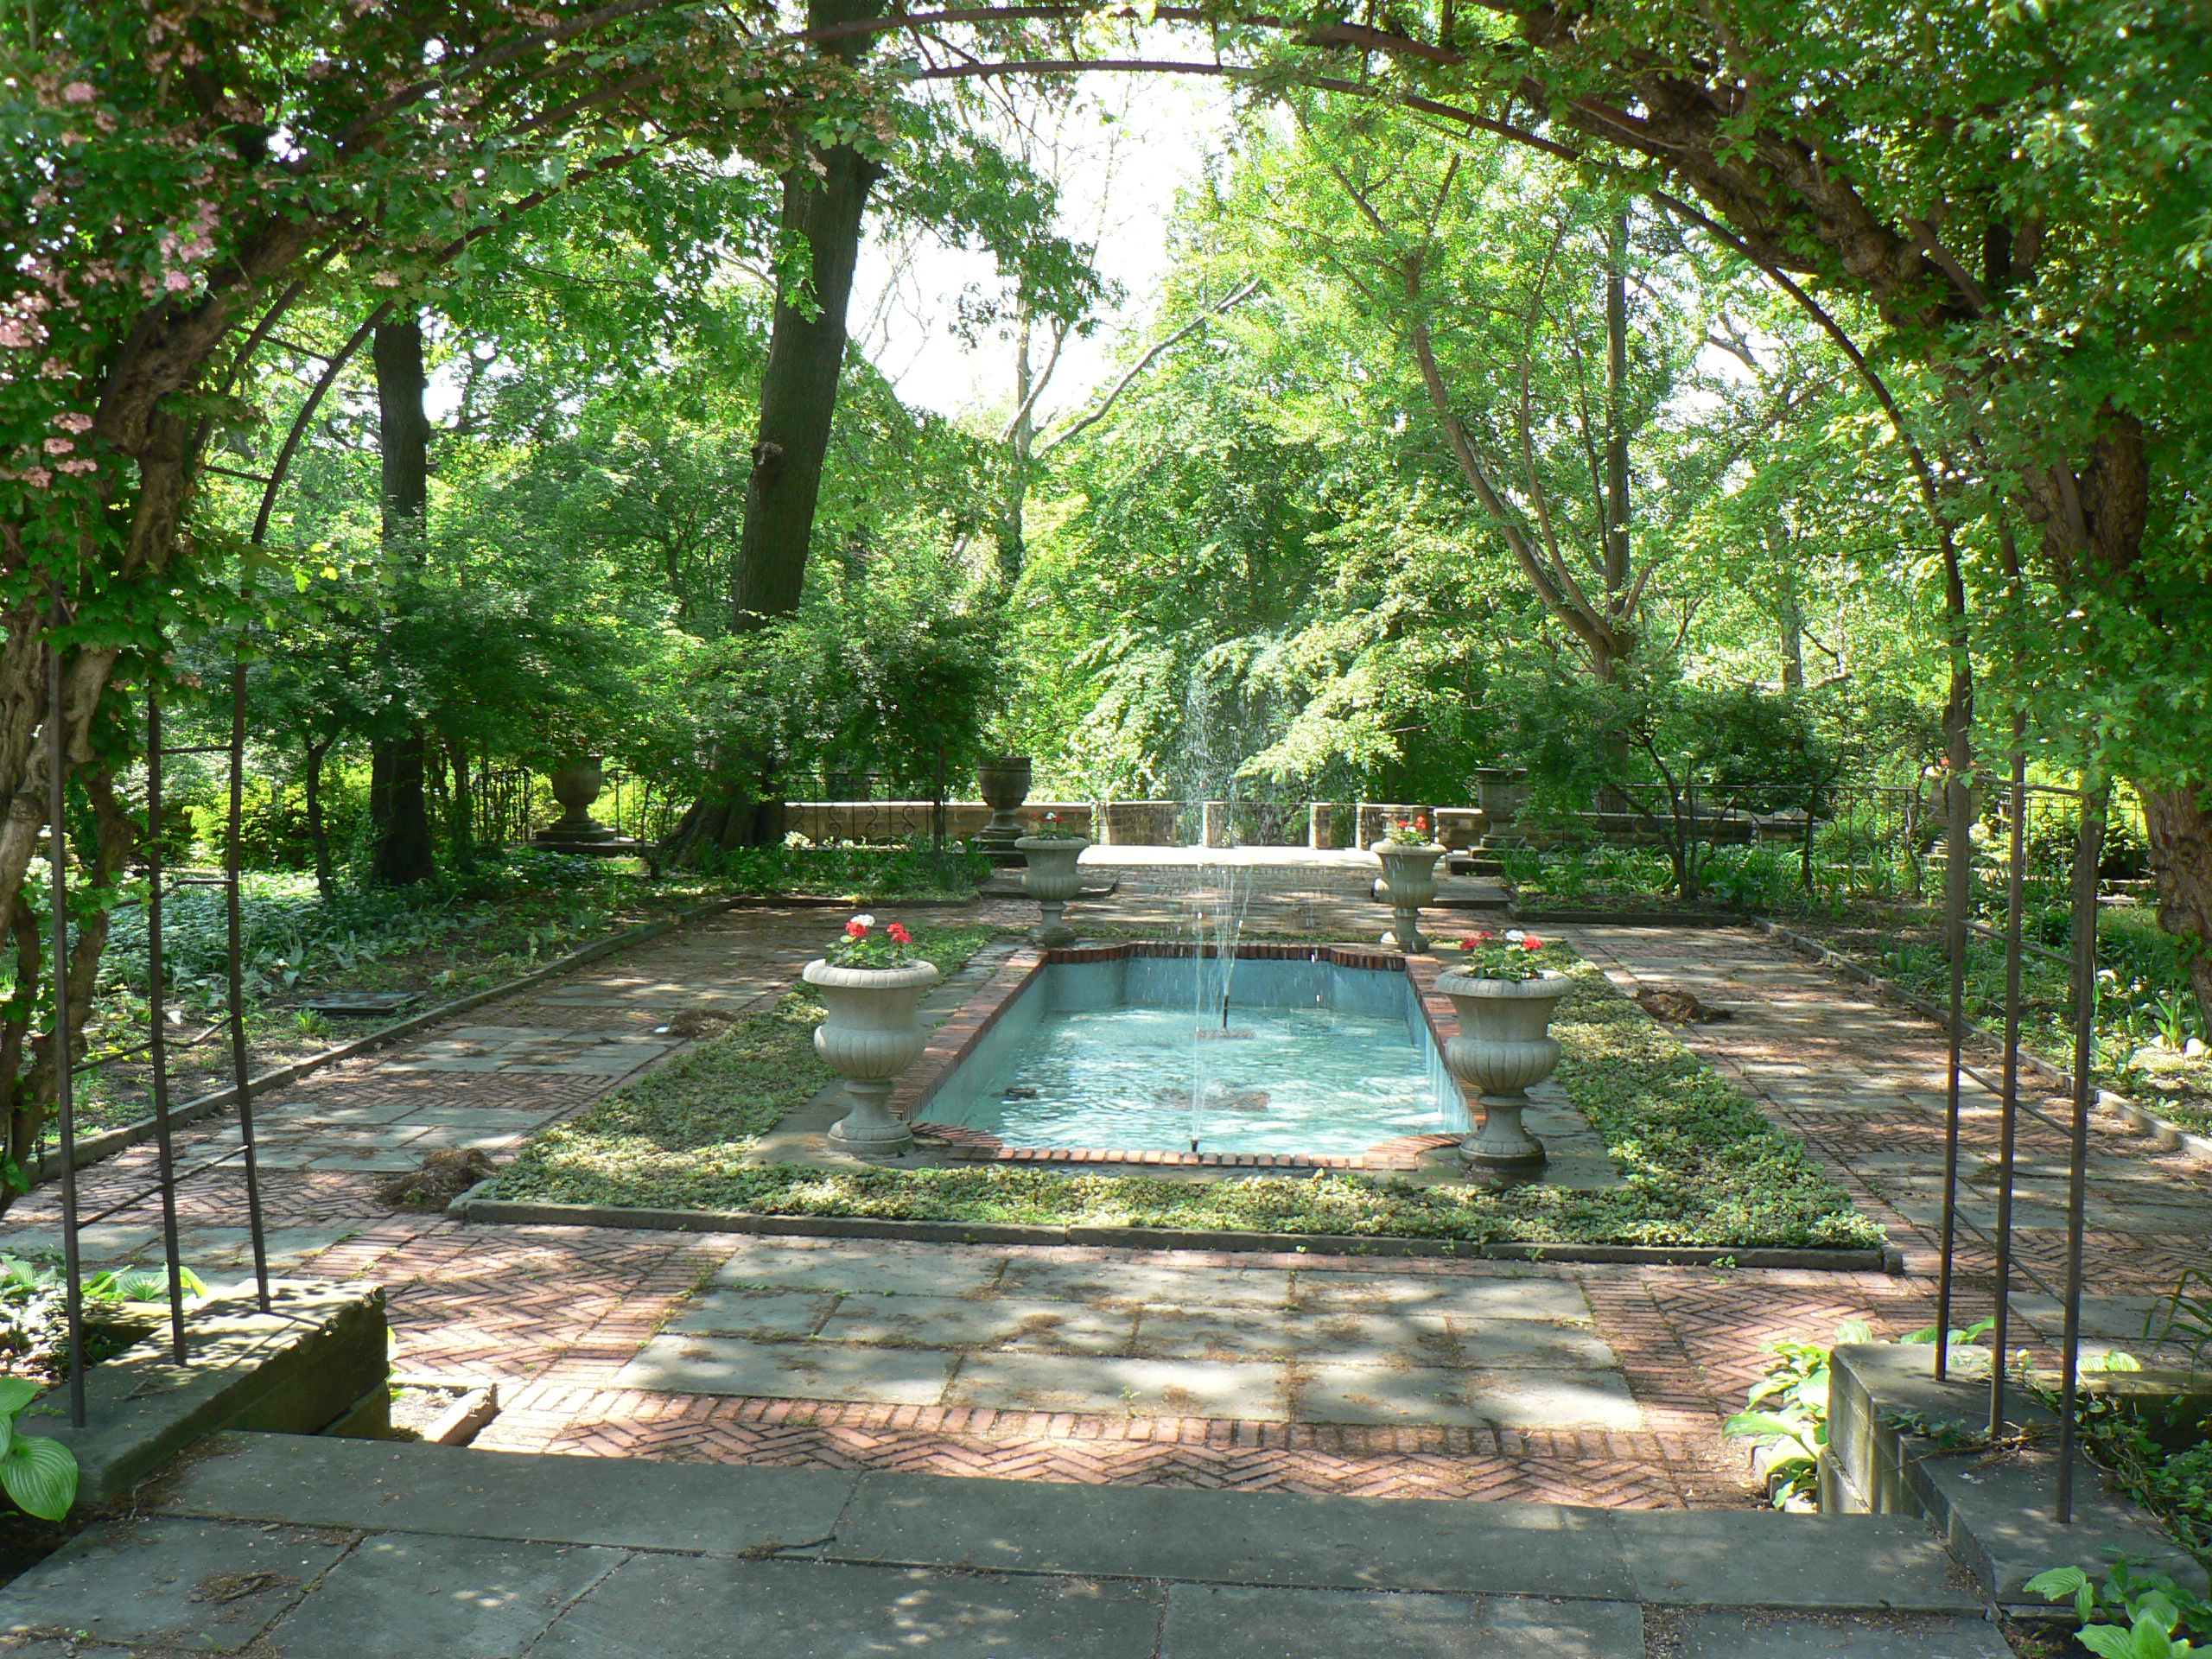 The Hungarian Cultural Garden in